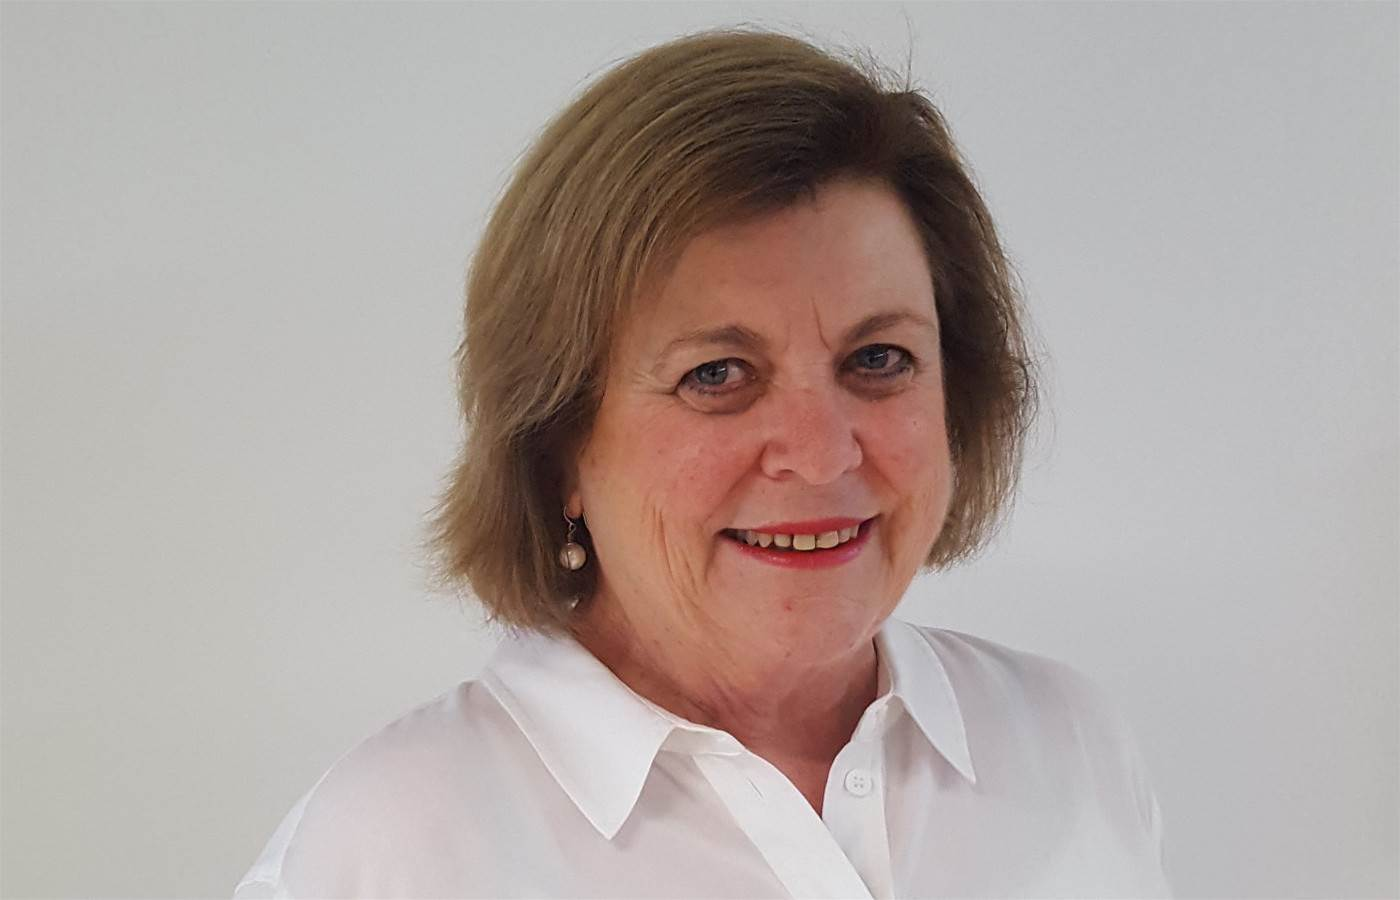 Cloud provider Hosted Network names Aileen Paterson as channel chief